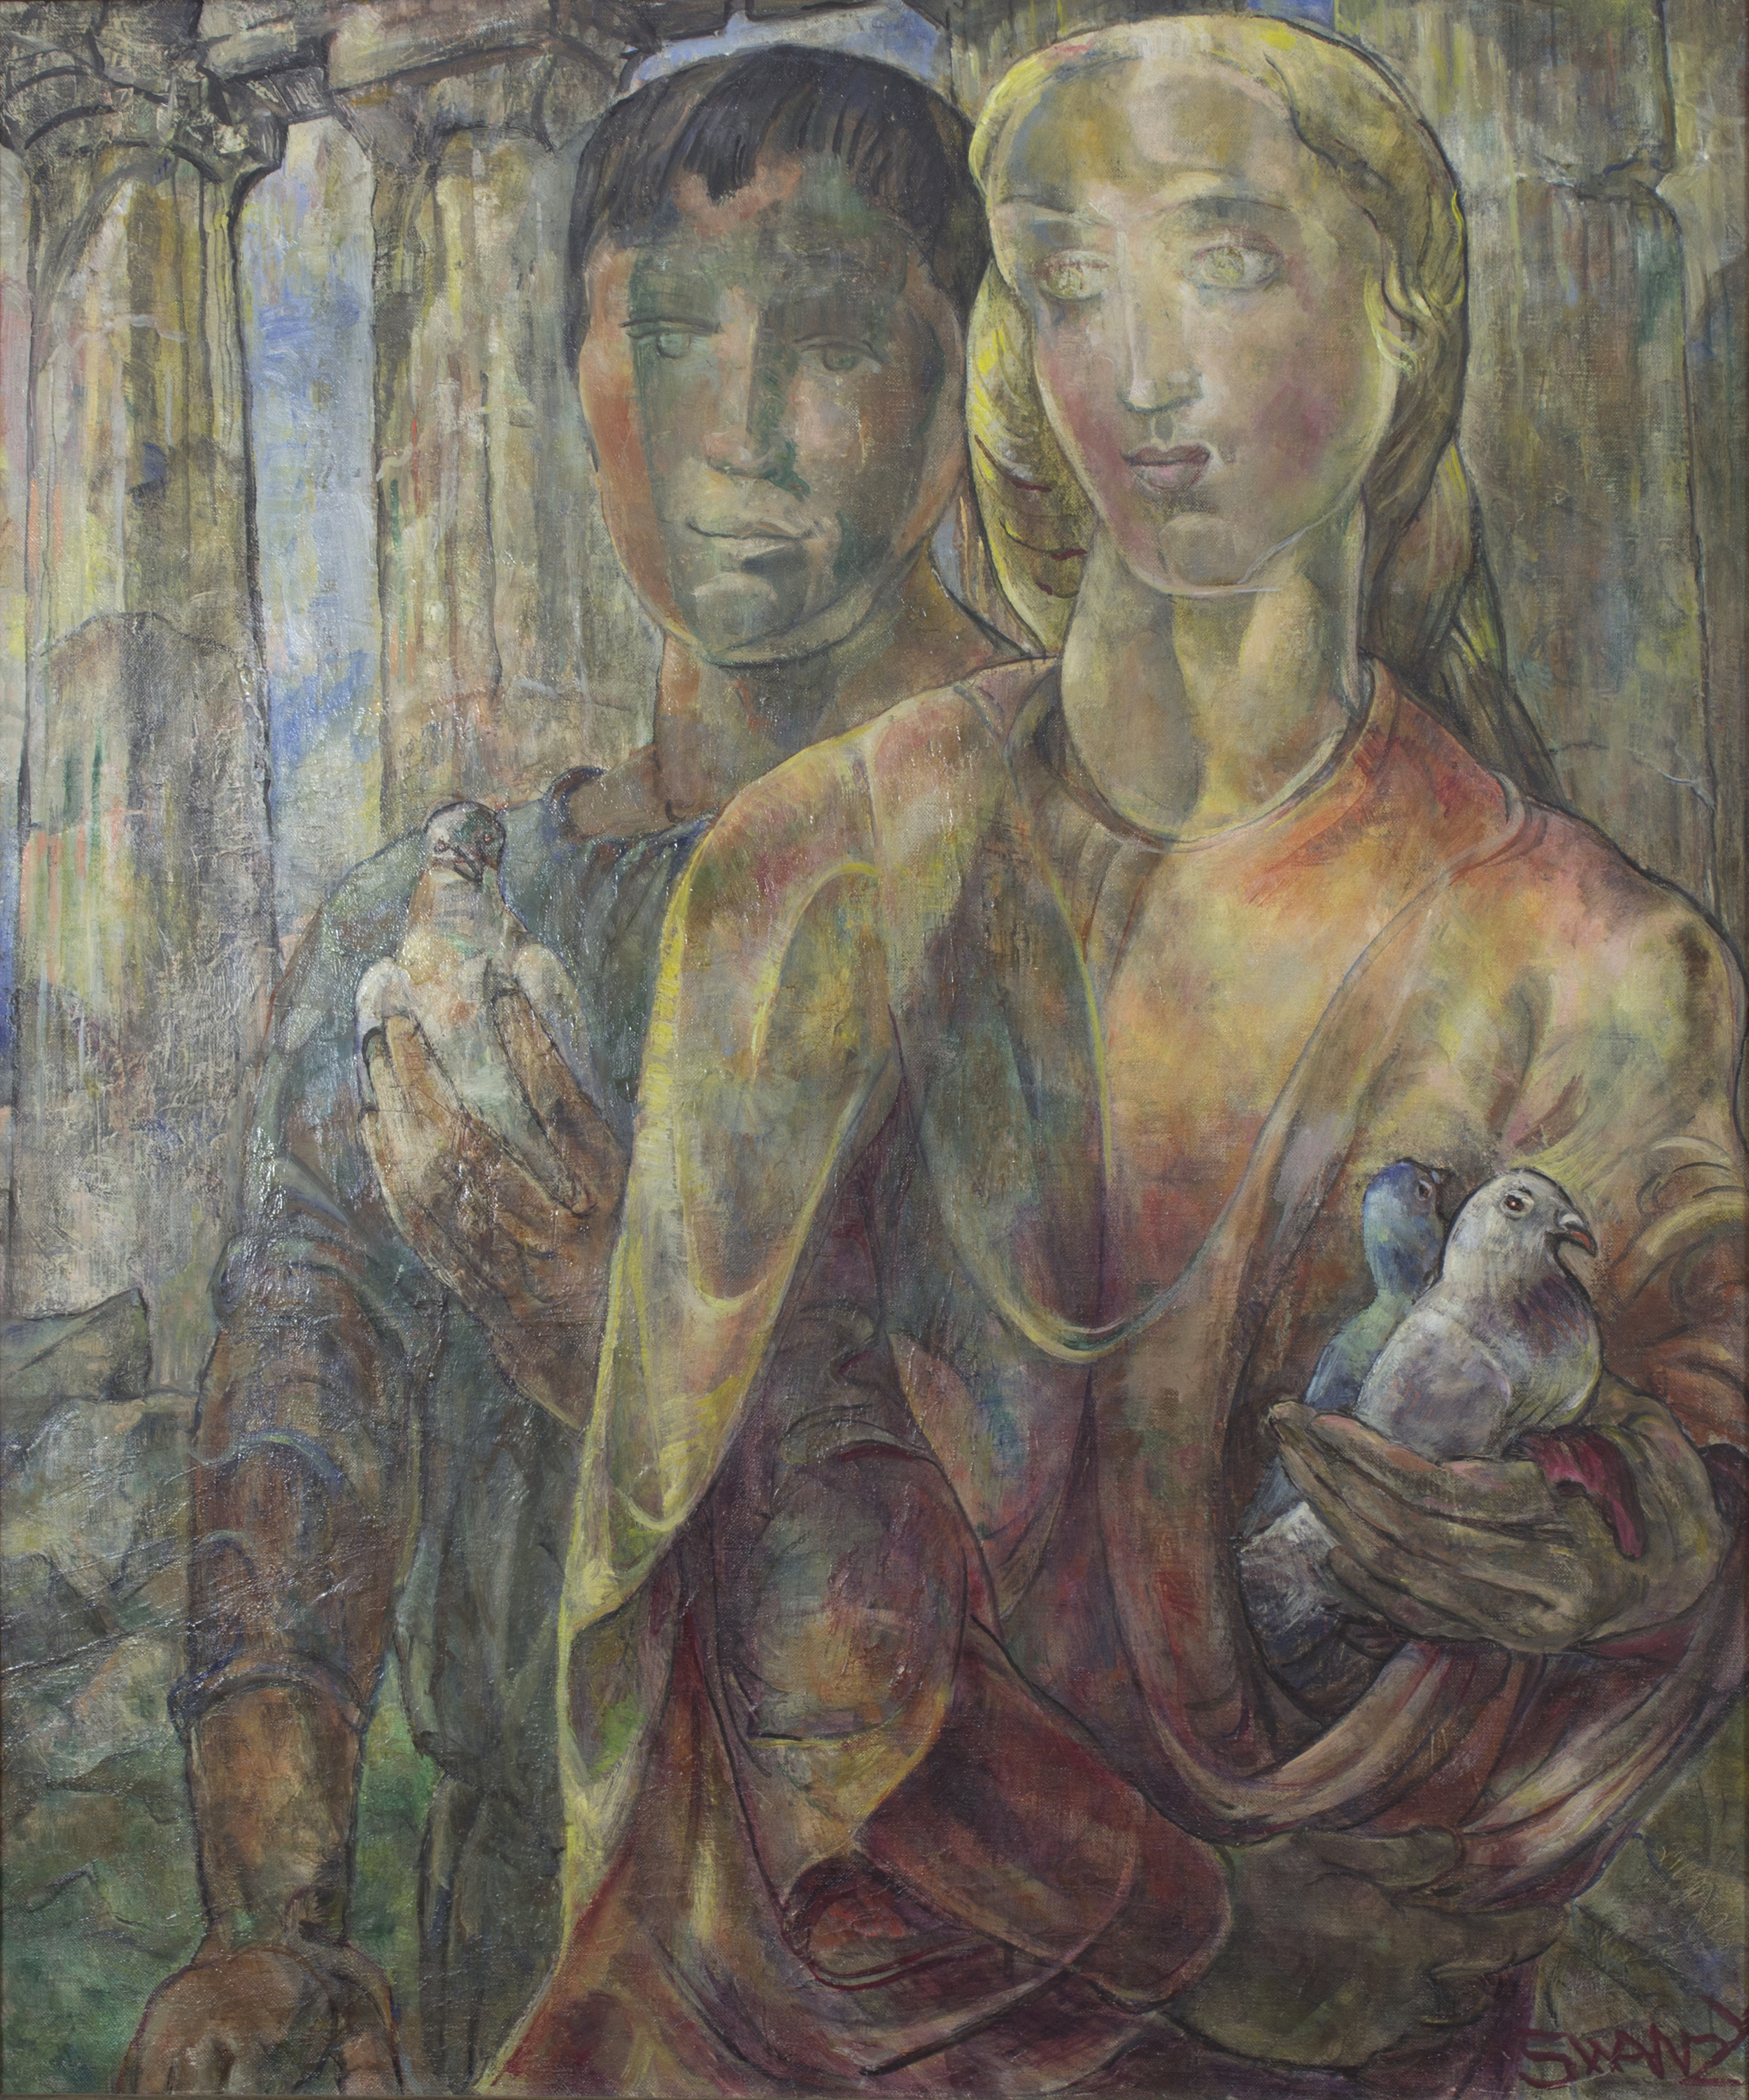 Mary Swanzy 'The Temple Offering' 1943 oil on canvas 75x63cm